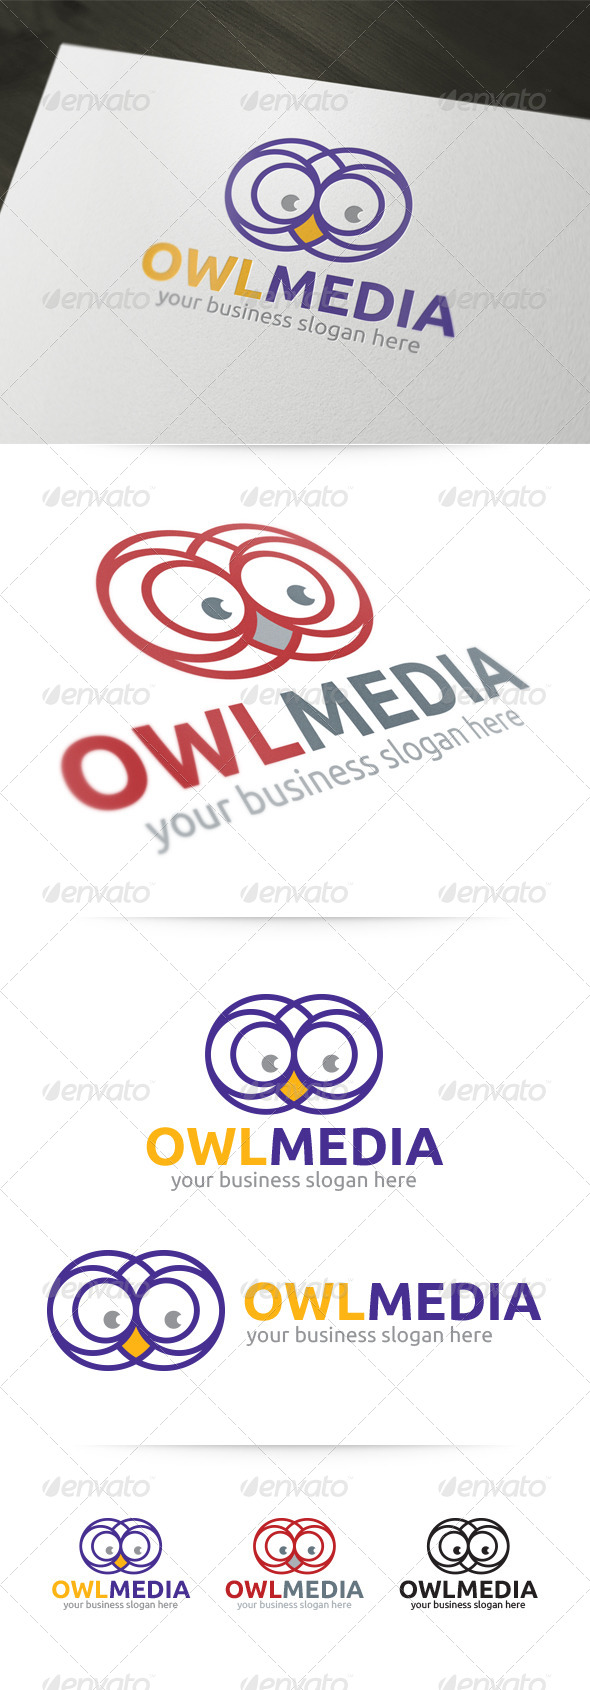 GraphicRiver Owl Media Logo 4830898